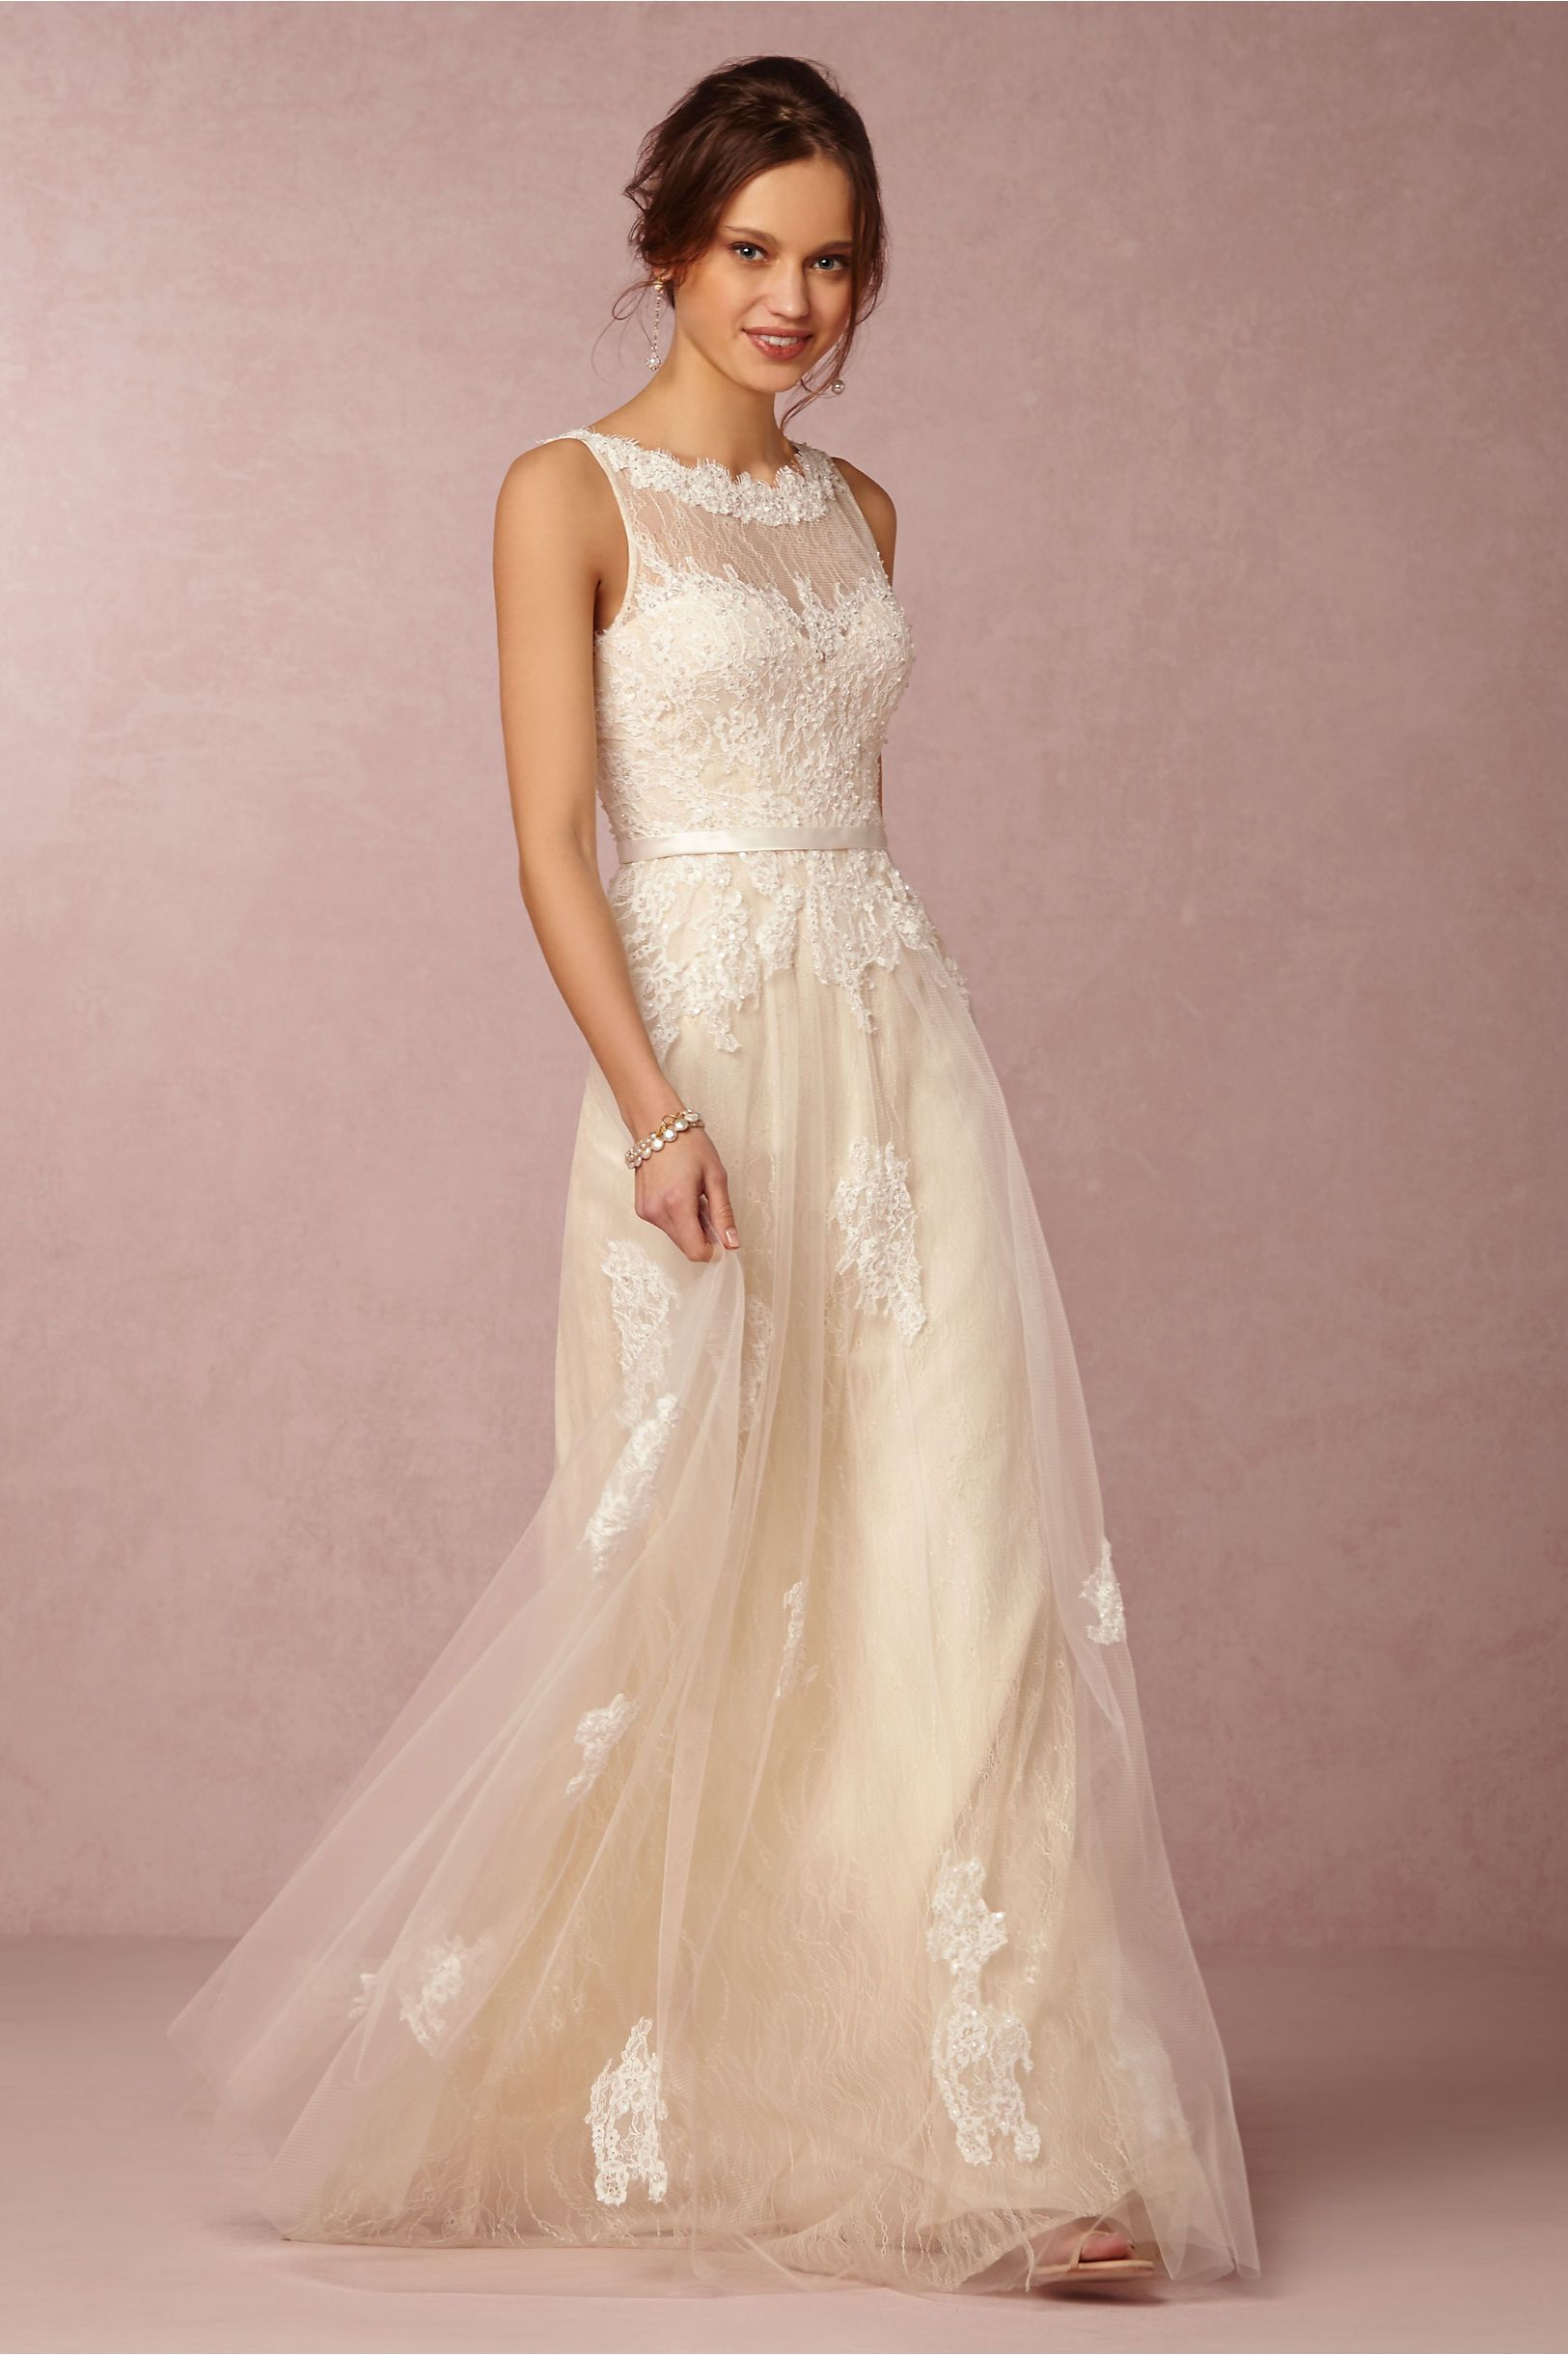 New Wedding Dresses for 2015 from BHLDN | Pinterest | Novios ...